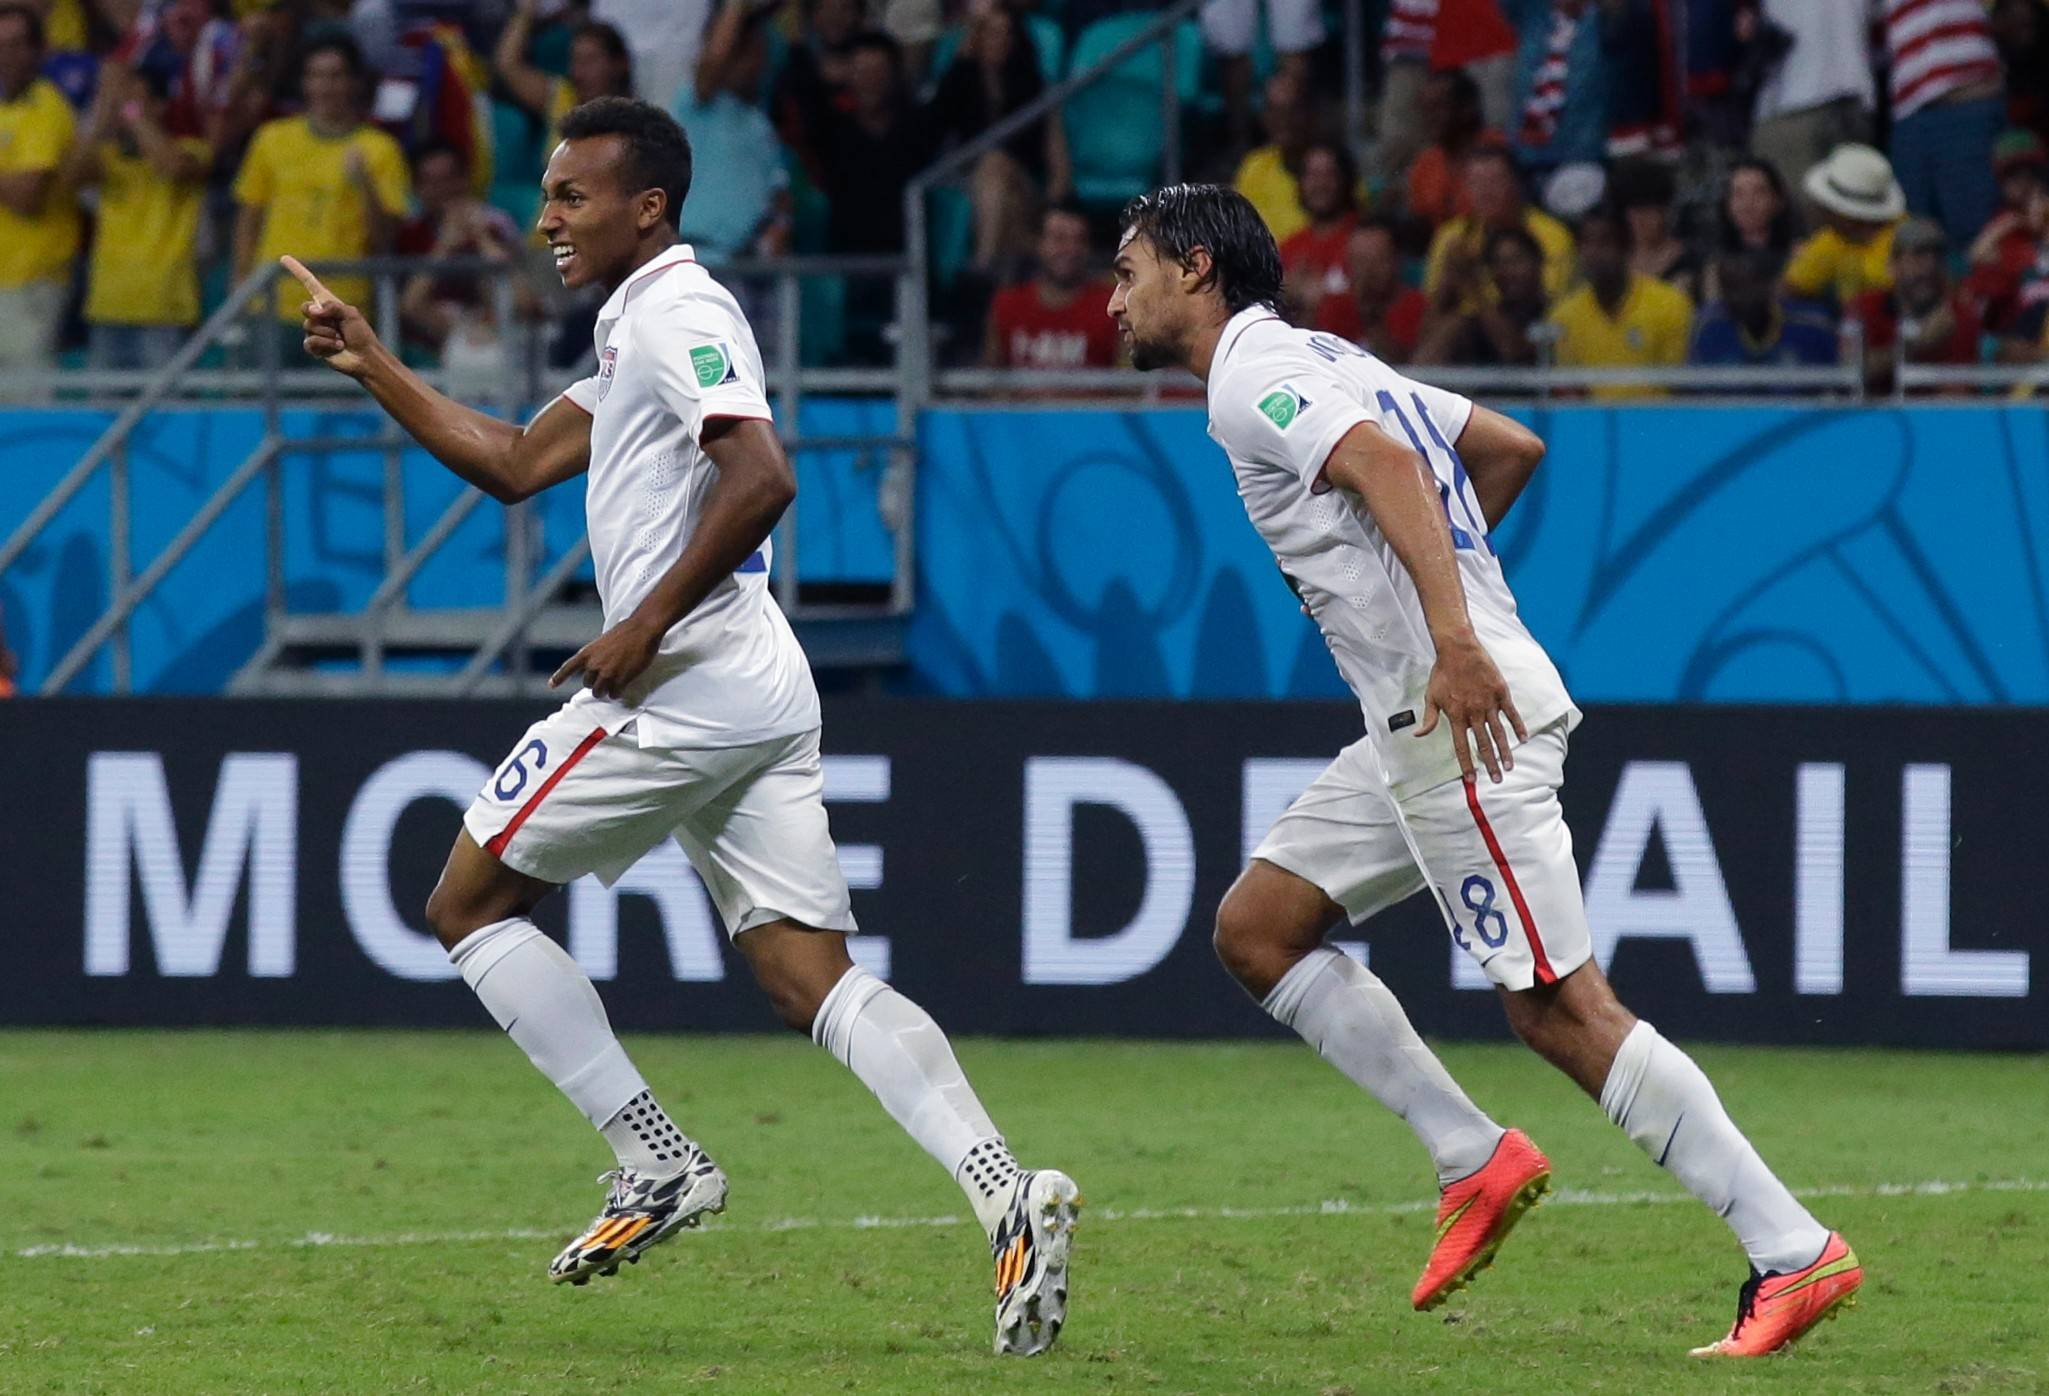 Julian Green, left, celebrates after scoring his first goal in World Cup action last week. Green, who plays in Germany, is one of the many young players expected to help the United States qualify for the World Cup in 2018 in Russia.